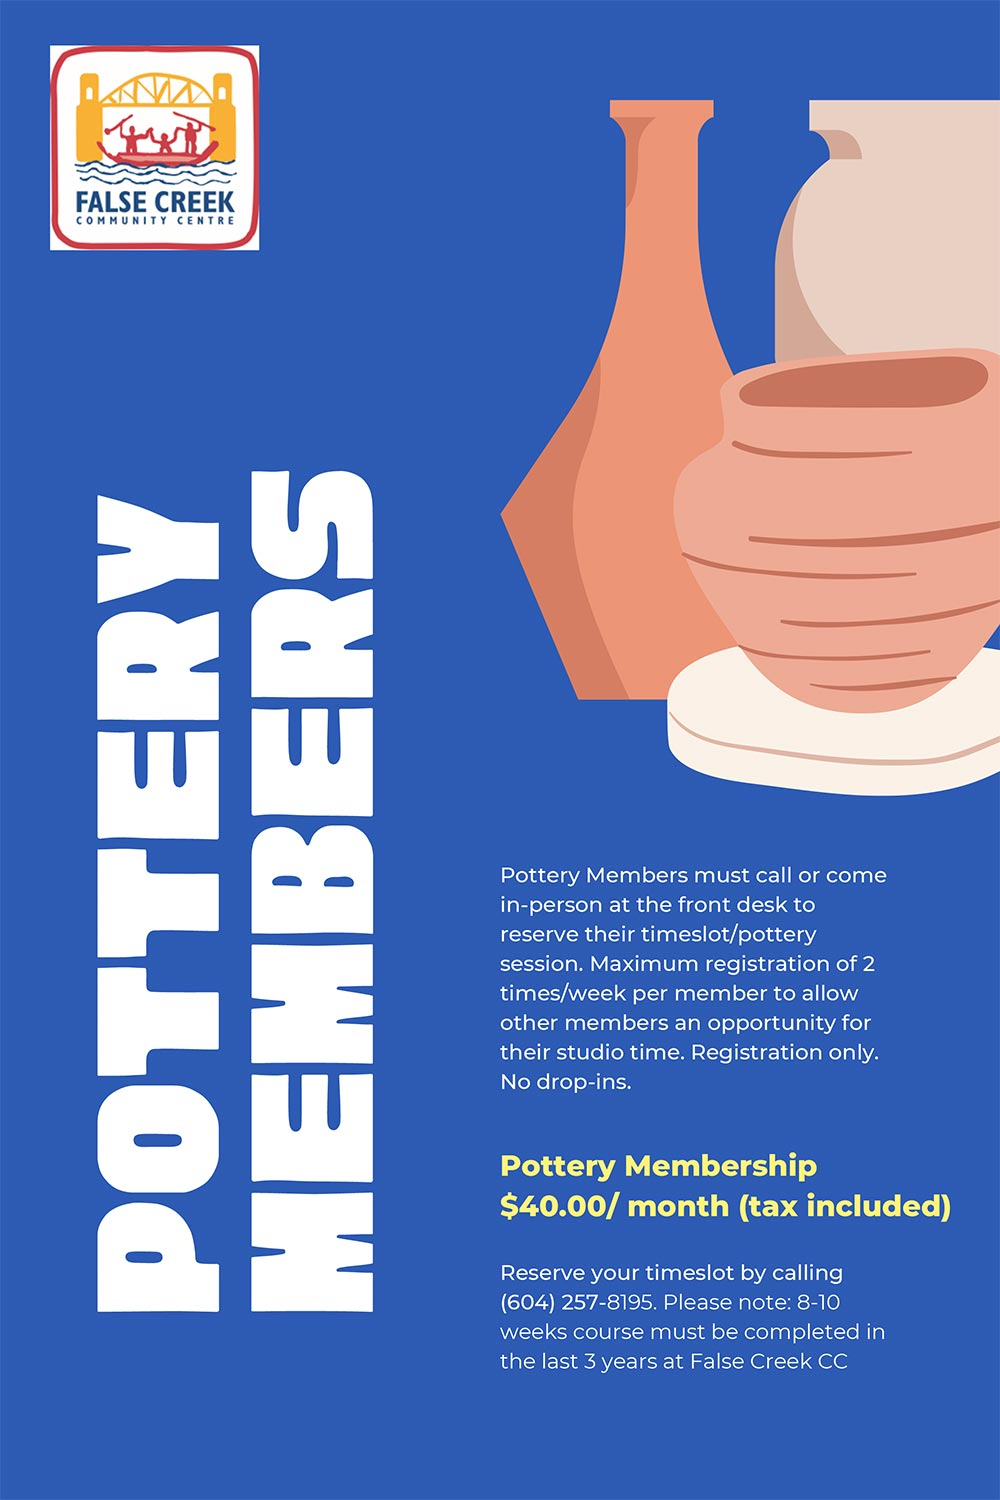 Pottery Members must call or come in-person at the front desk to reserve their timeslot/pottery session. Maximum registration of 2 times/week per member to allow other members an opportunity for their studio time. Registration only. No drop-ins. Pottery Membership $40.00/ month (tax included) Reserve your timeslot by calling(604)257-8195. Please note: 8-10weeks course must be completed inthe last 3 years at False Creek CC